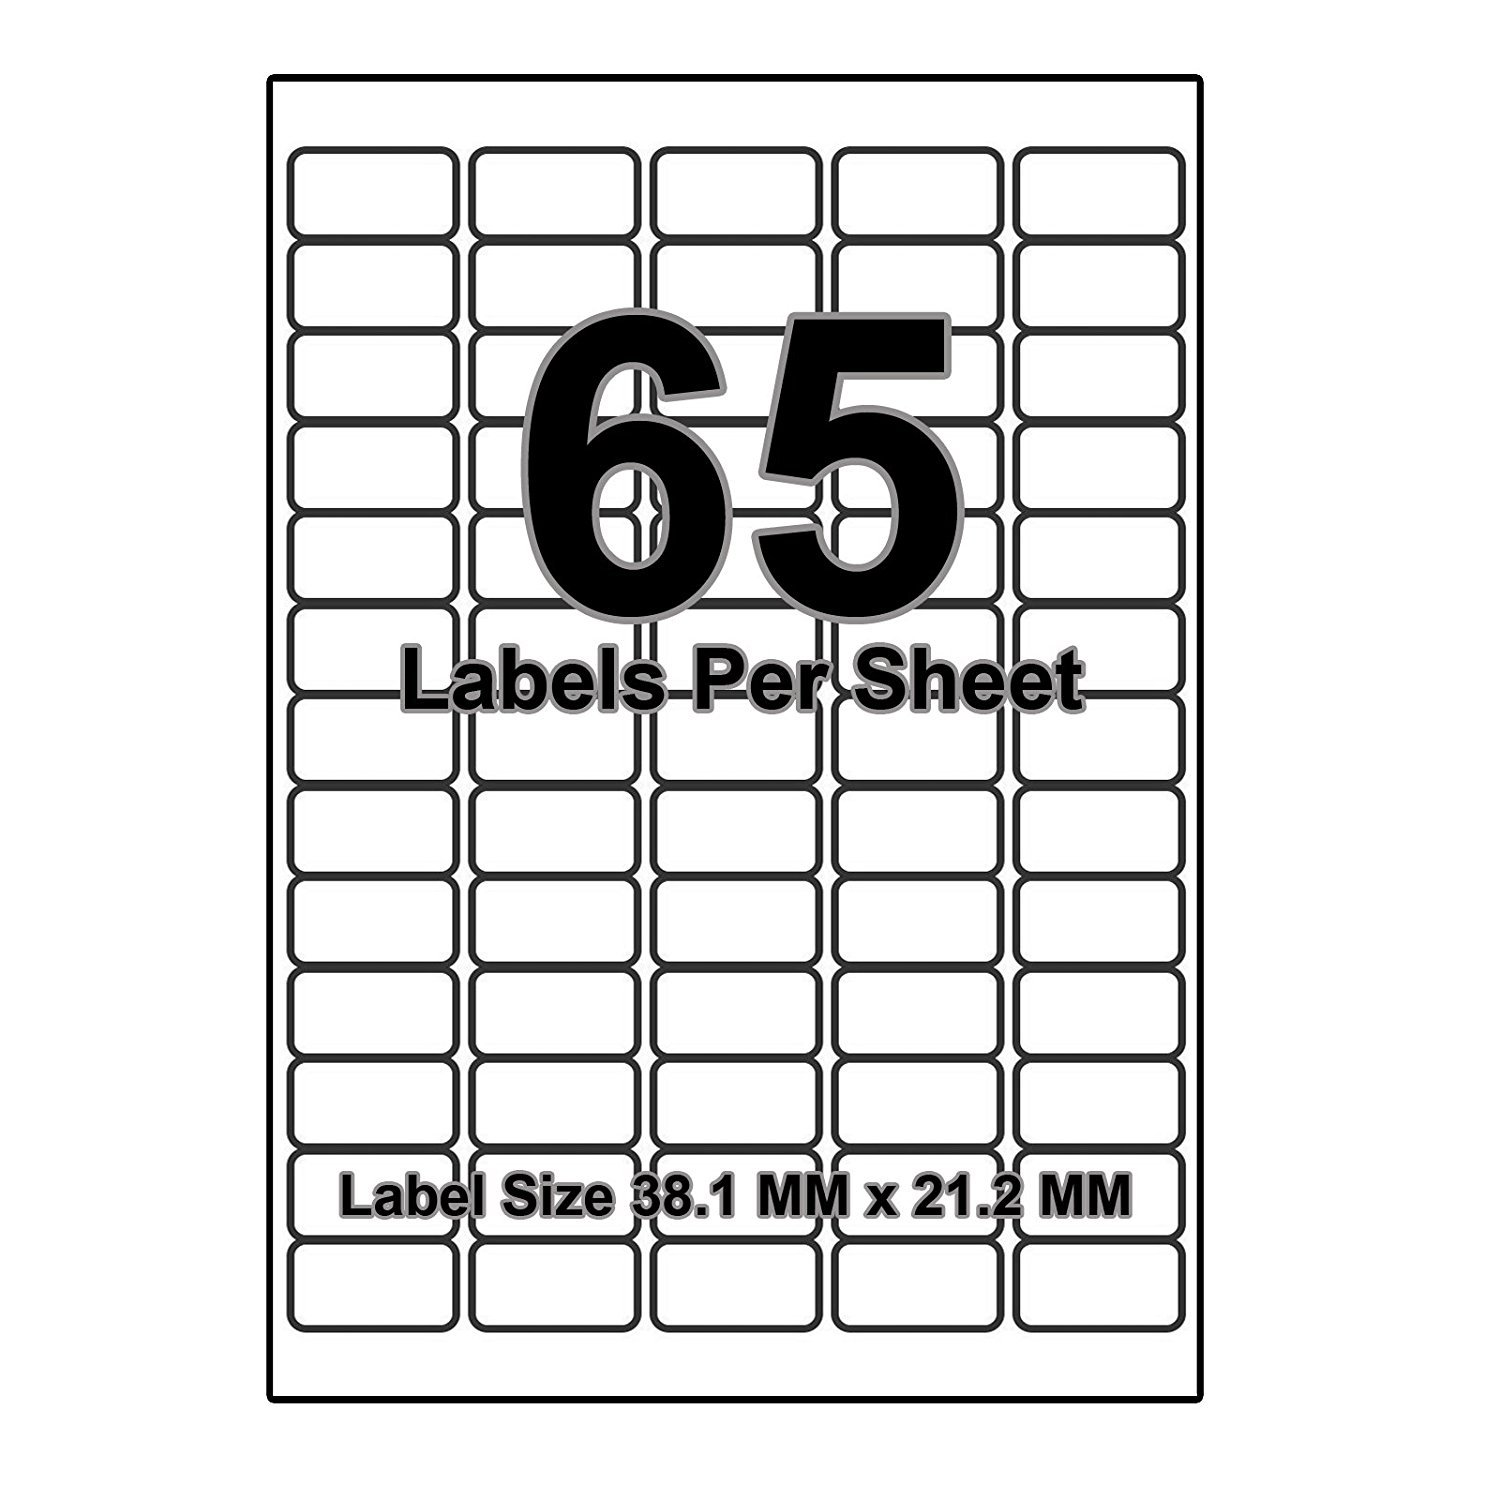 6 per page sheet 50 sheets 300 sticky label isoul white blank